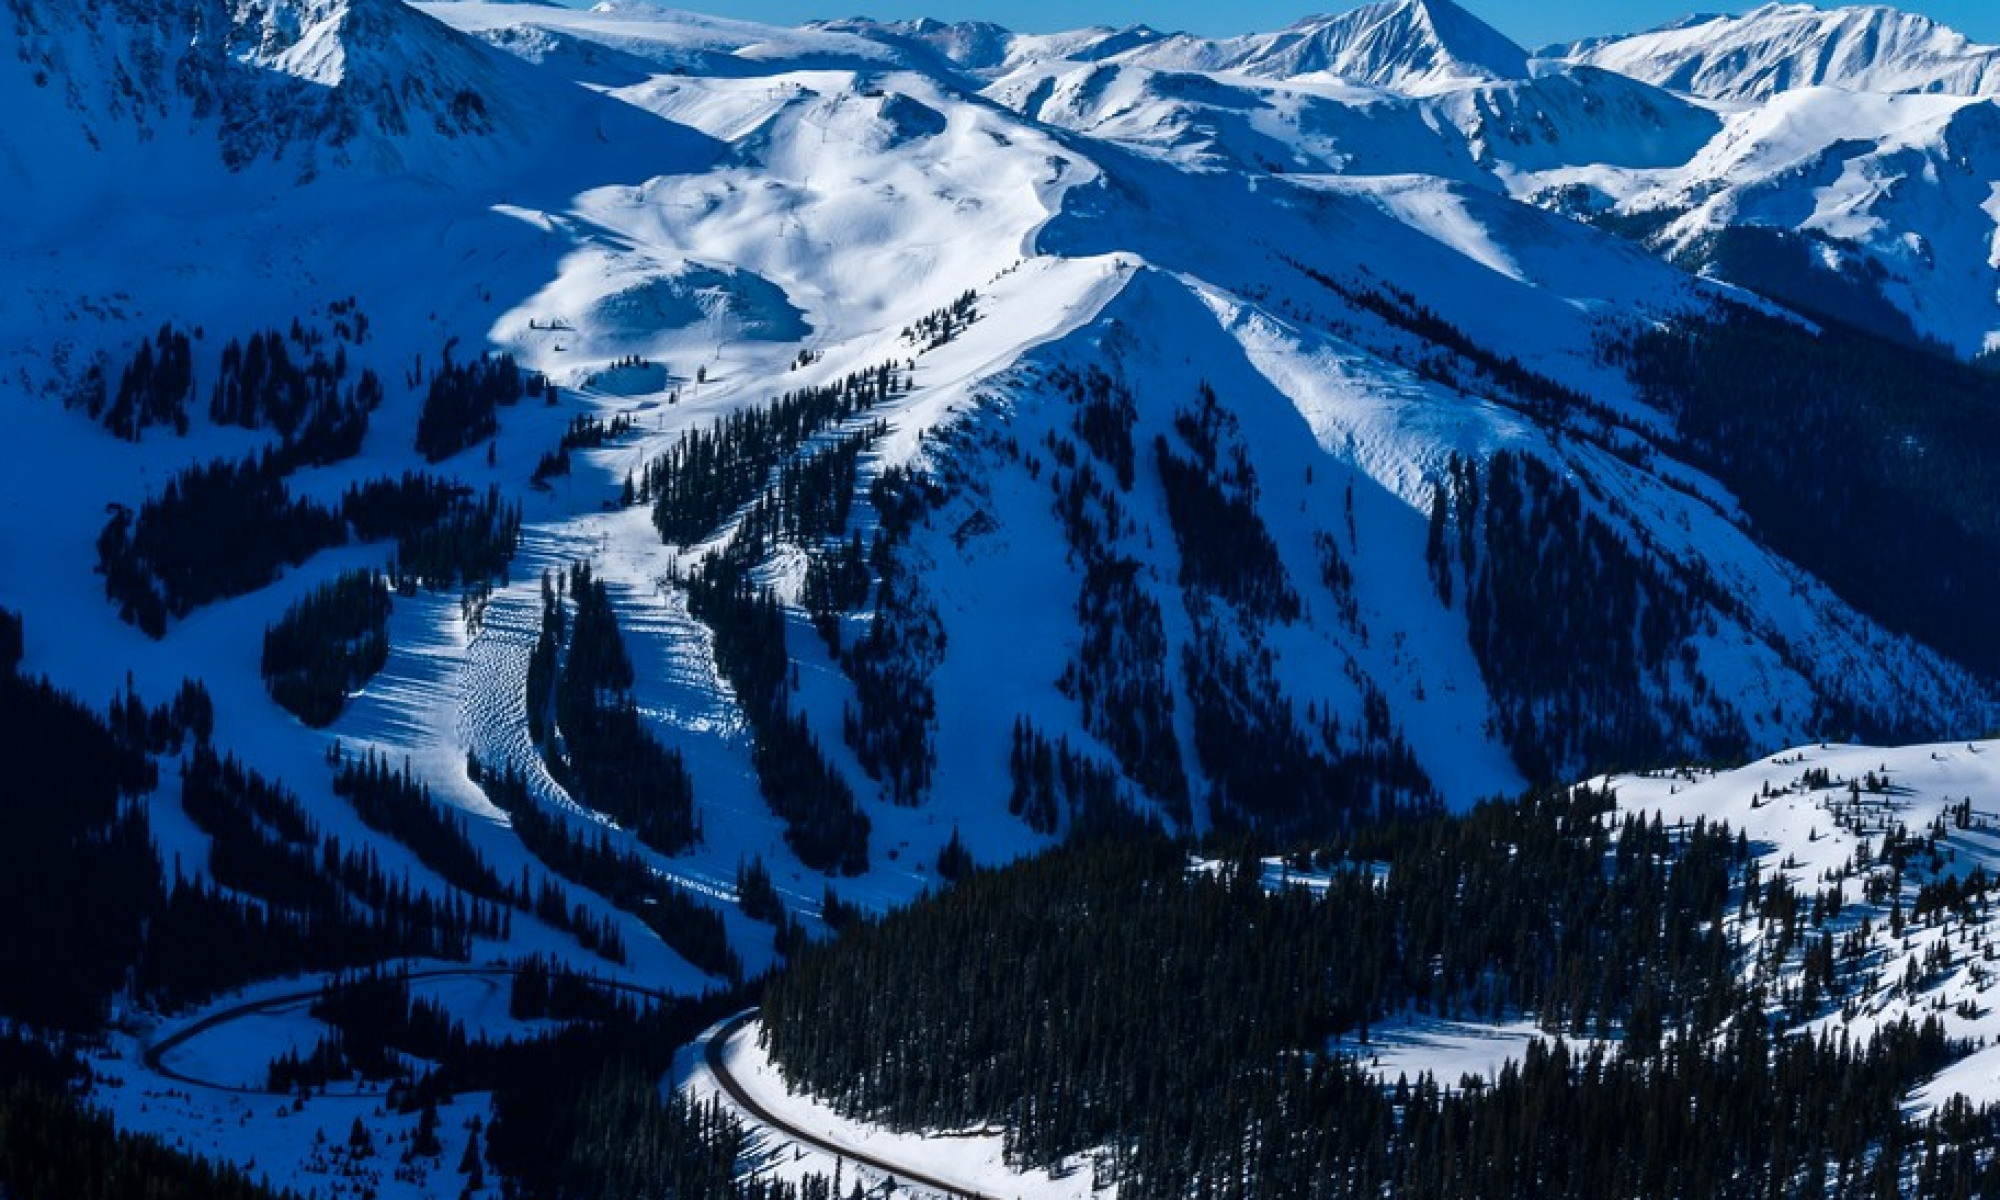 THE IKON PASS CONTINUES TO DELIVER – now adding Arapahoe Basin Ski Area to it's list of resorts